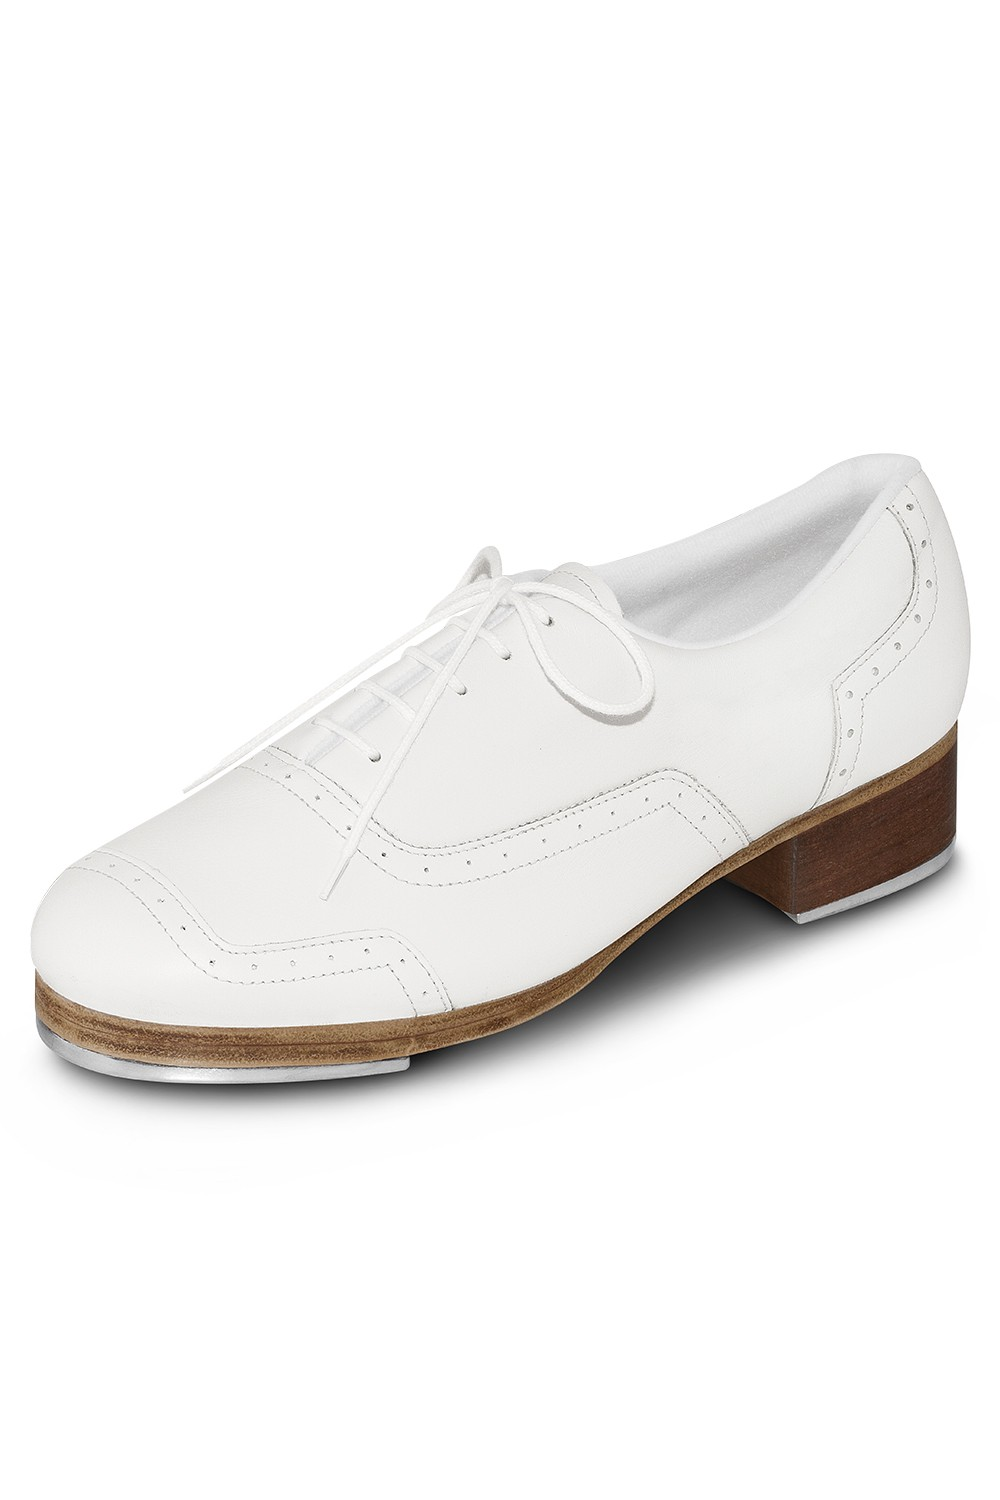 Jason Samuells Smith - Homem Men's Tap Shoes